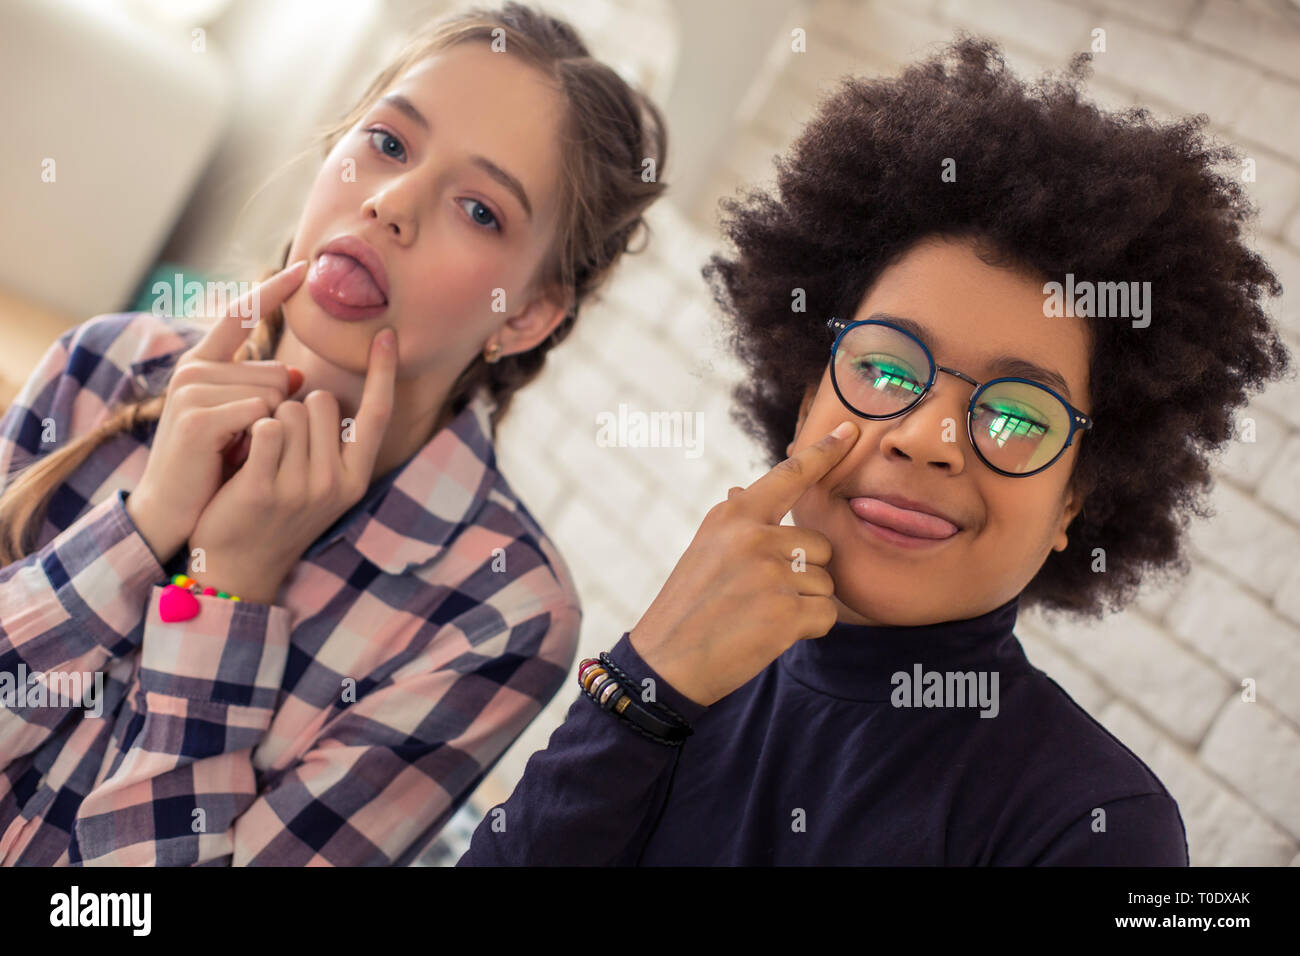 Playful teenagers making funny faces on camera - Stock Image